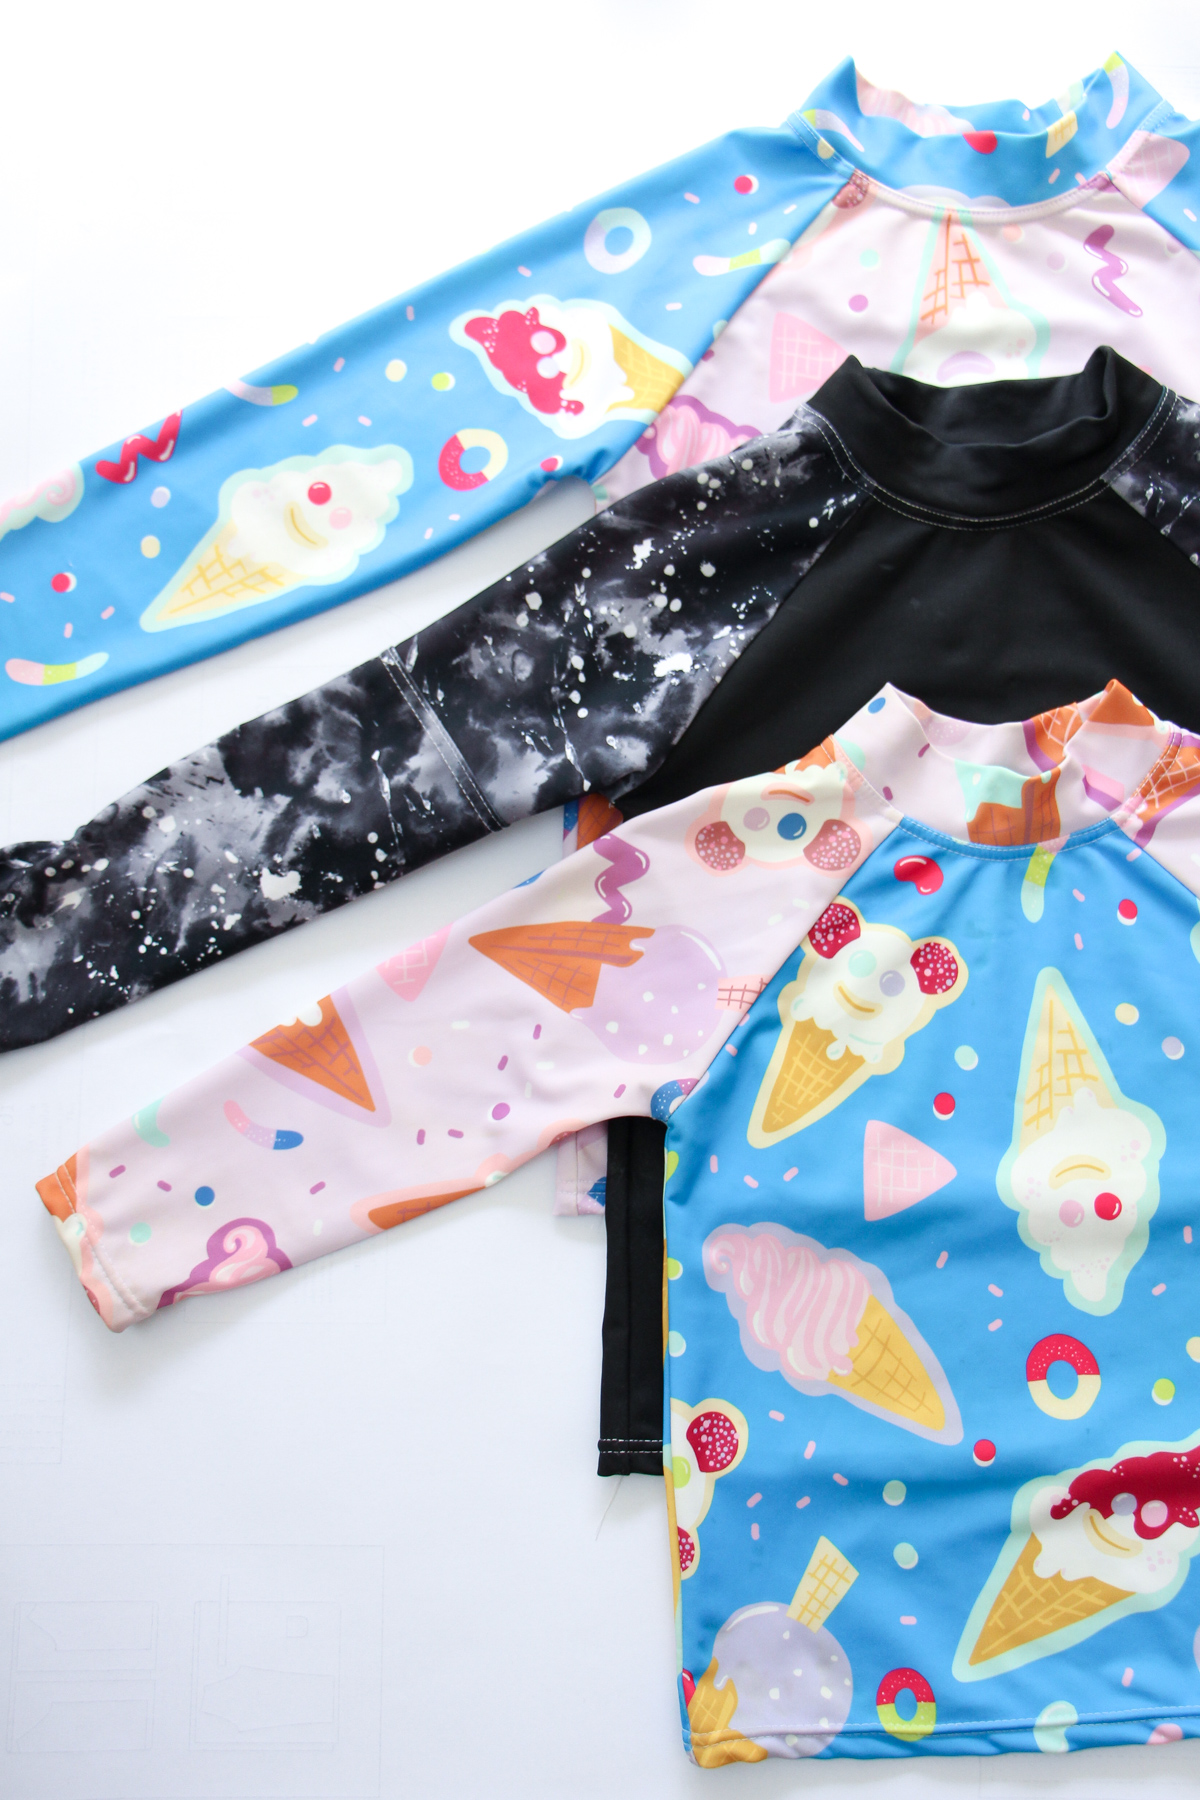 Boo Designs Rashie's made using Ellie Whittaker Creamy Ice Dreamy swim lycra // Megan Nielsen Design Diary